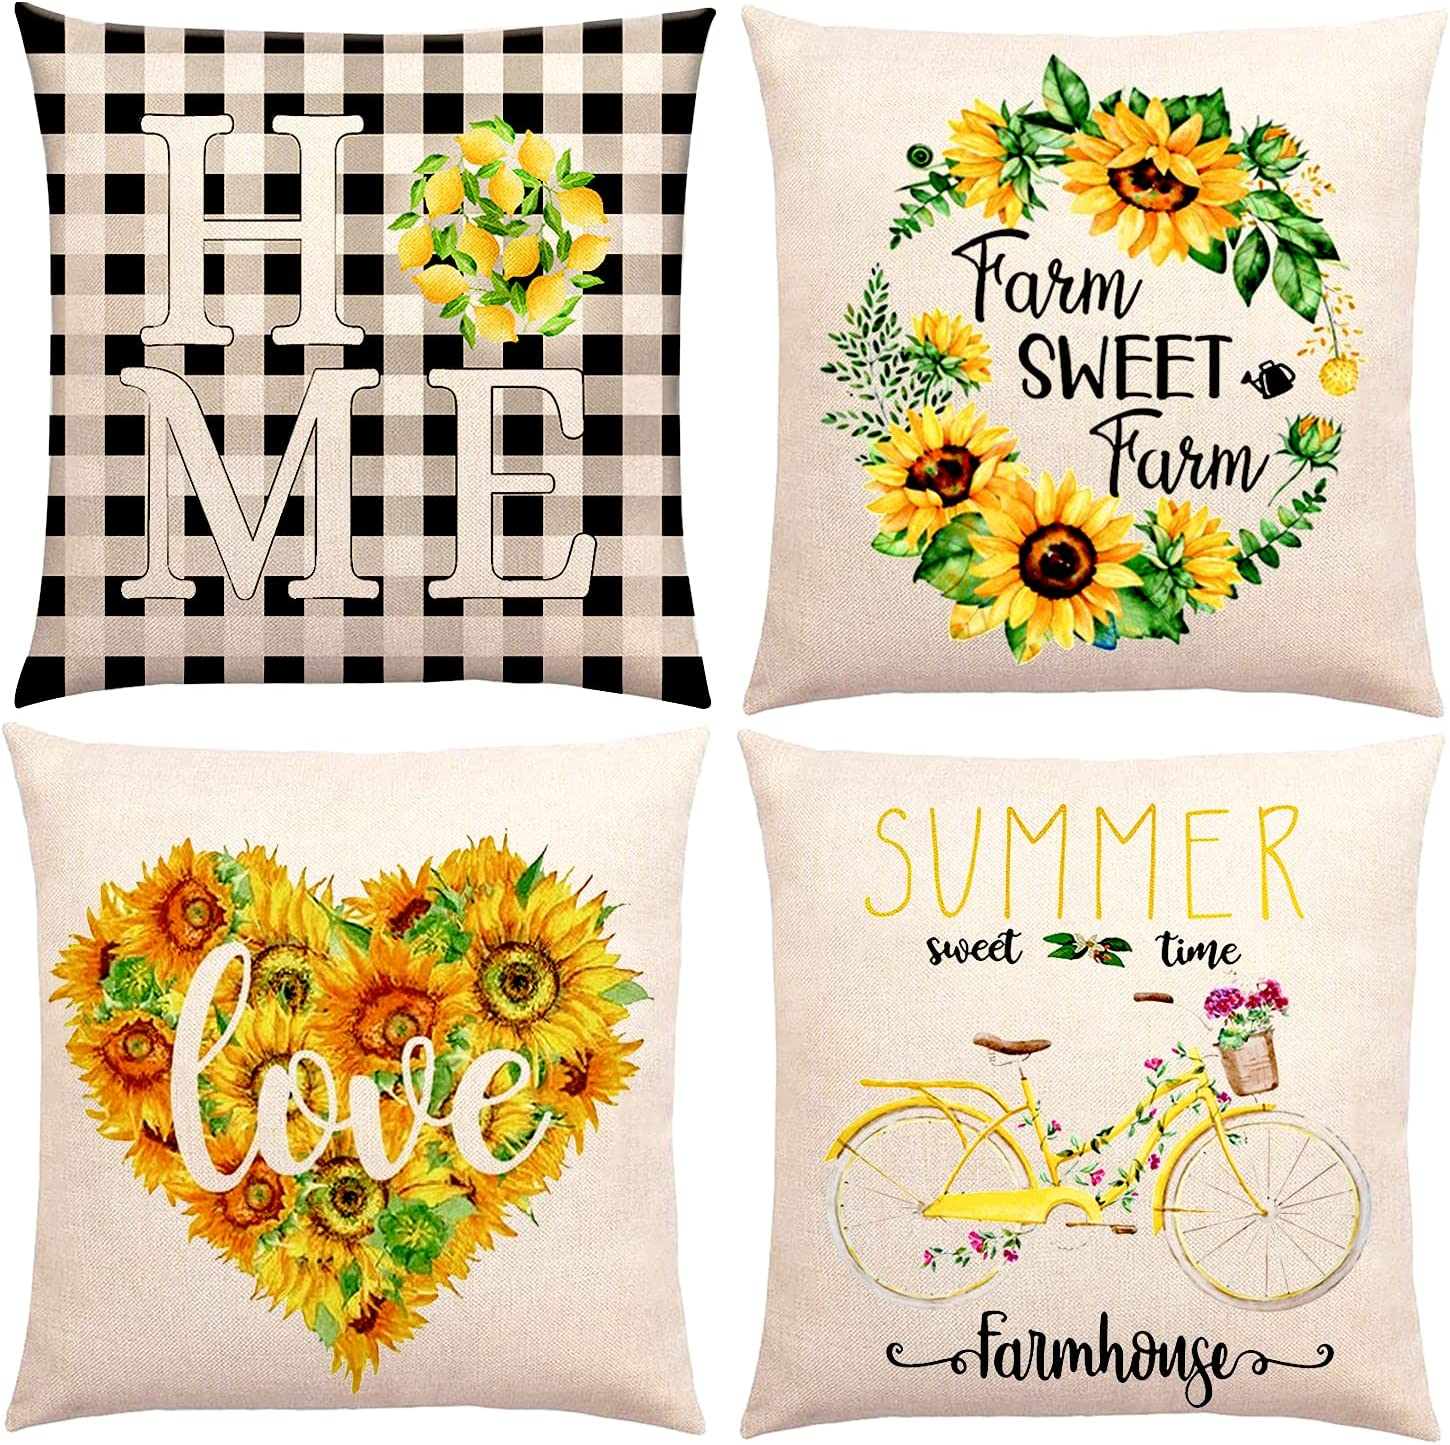 BIMZUC Summer Sunflower Pillow Covers 18x18, Yellow Decorative Throw Pillow Covers Set of 4, Farmhouse Cushion Cases Home Decor for Living Room Outdoor Sofa